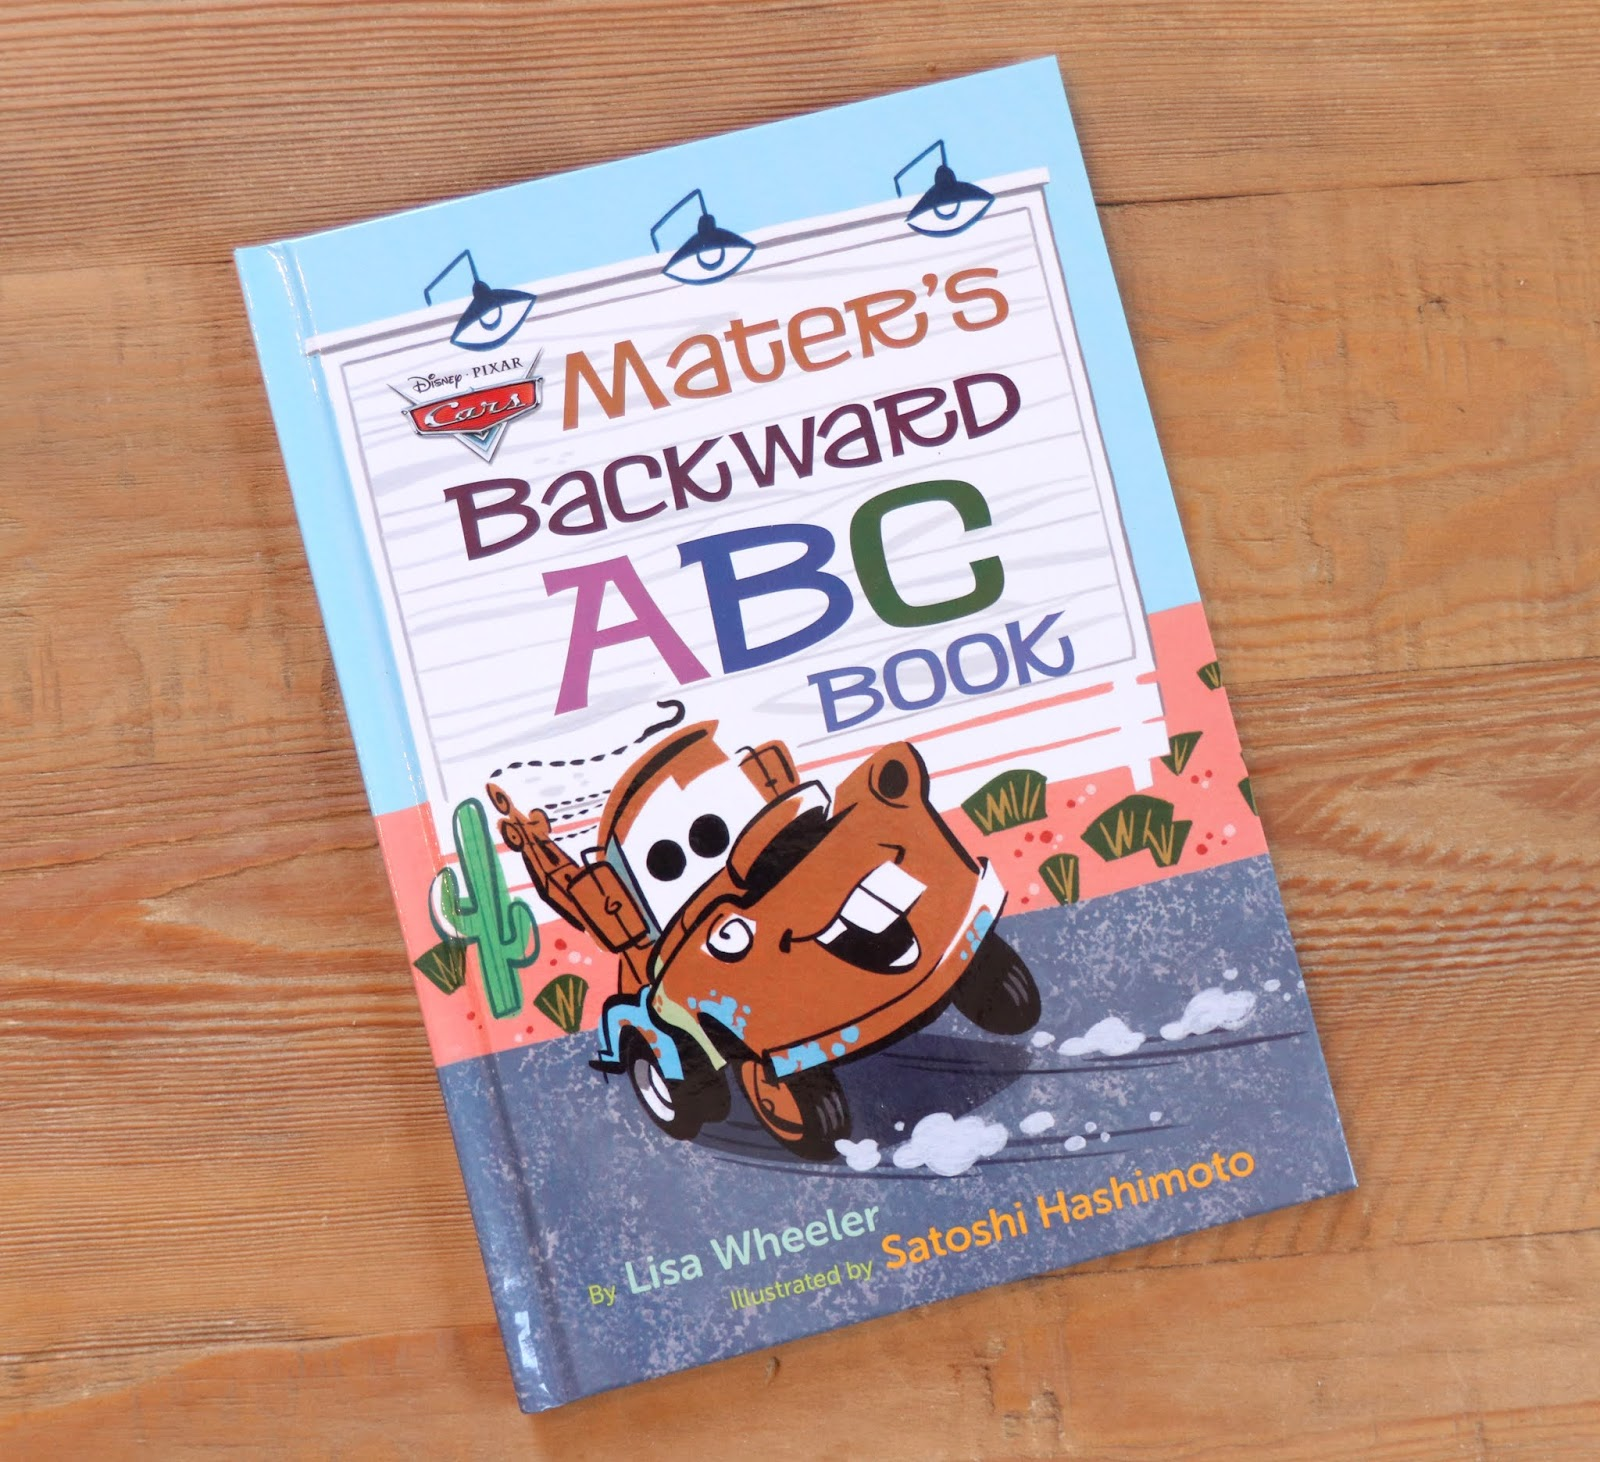 Cars 3: Mater's Backward ABC Book